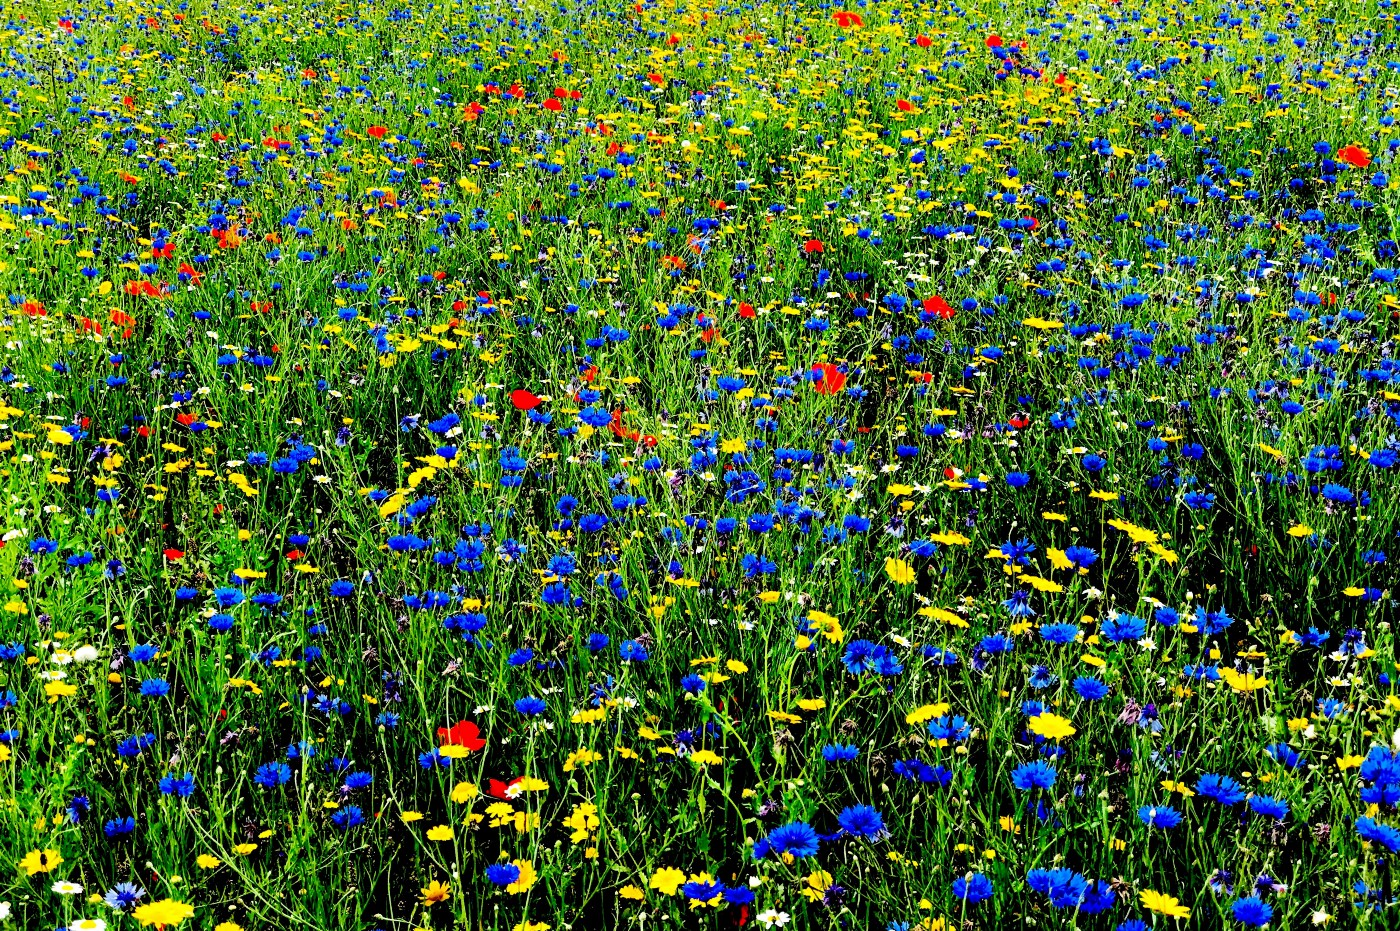 Blue, red and yellow flowers in a field